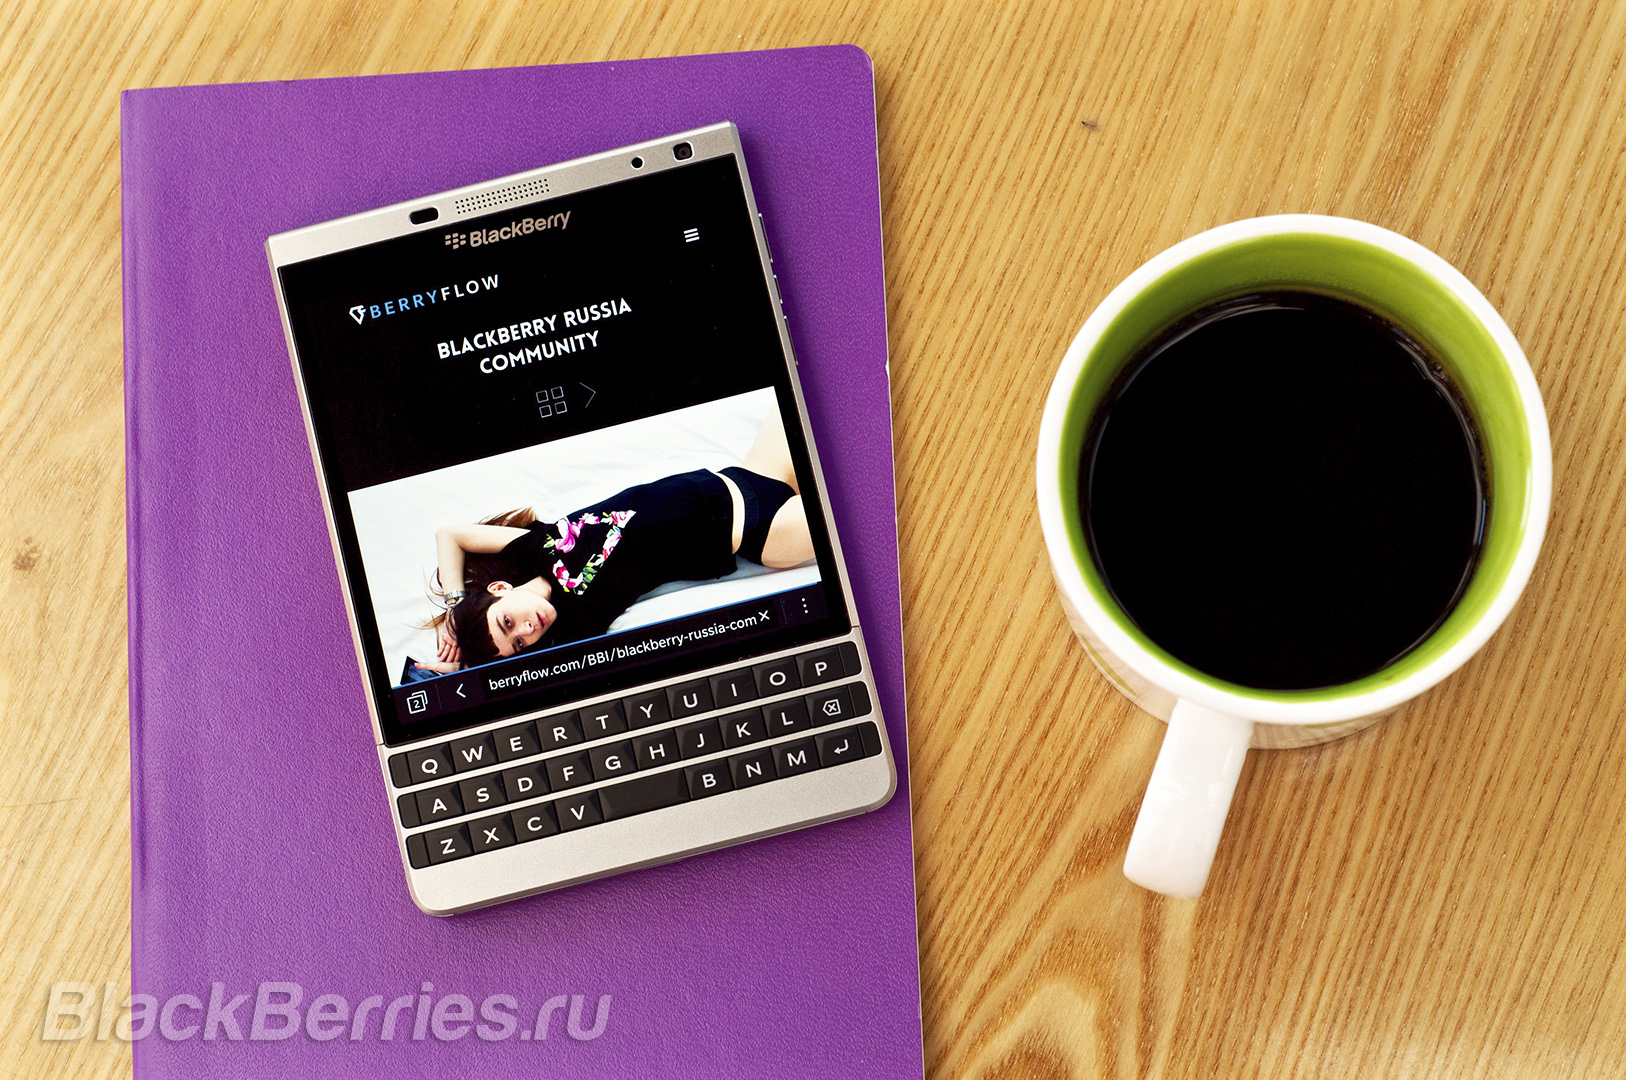 BlackBerry-Passport-Silver-Edition-Review-11